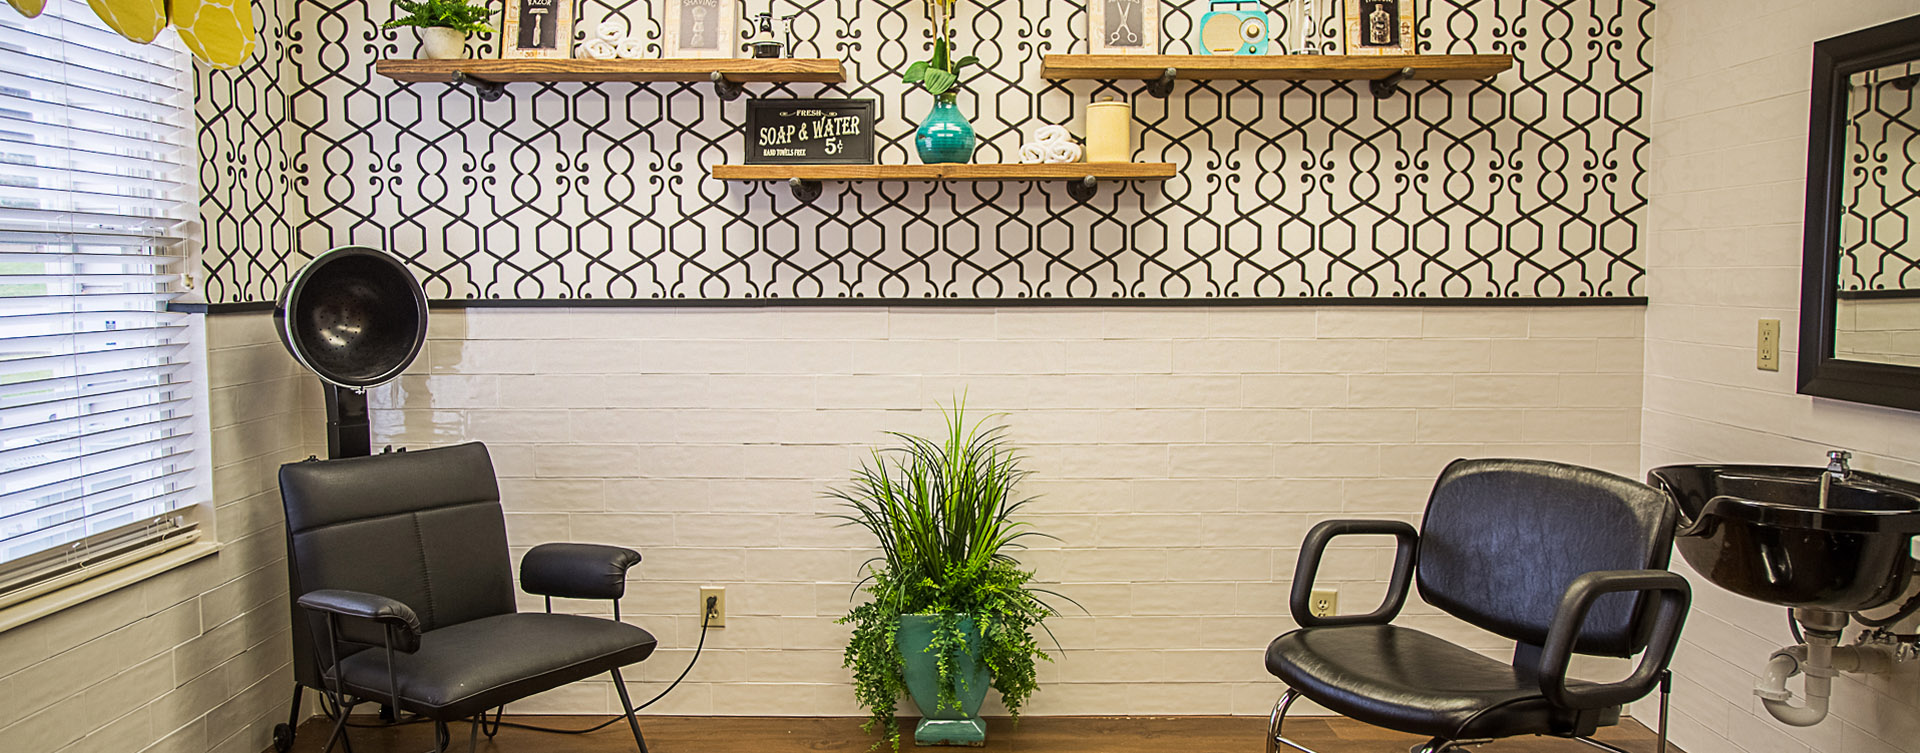 Receive personalized, at-home treatment from our stylist in the salon at Bickford of Davenport